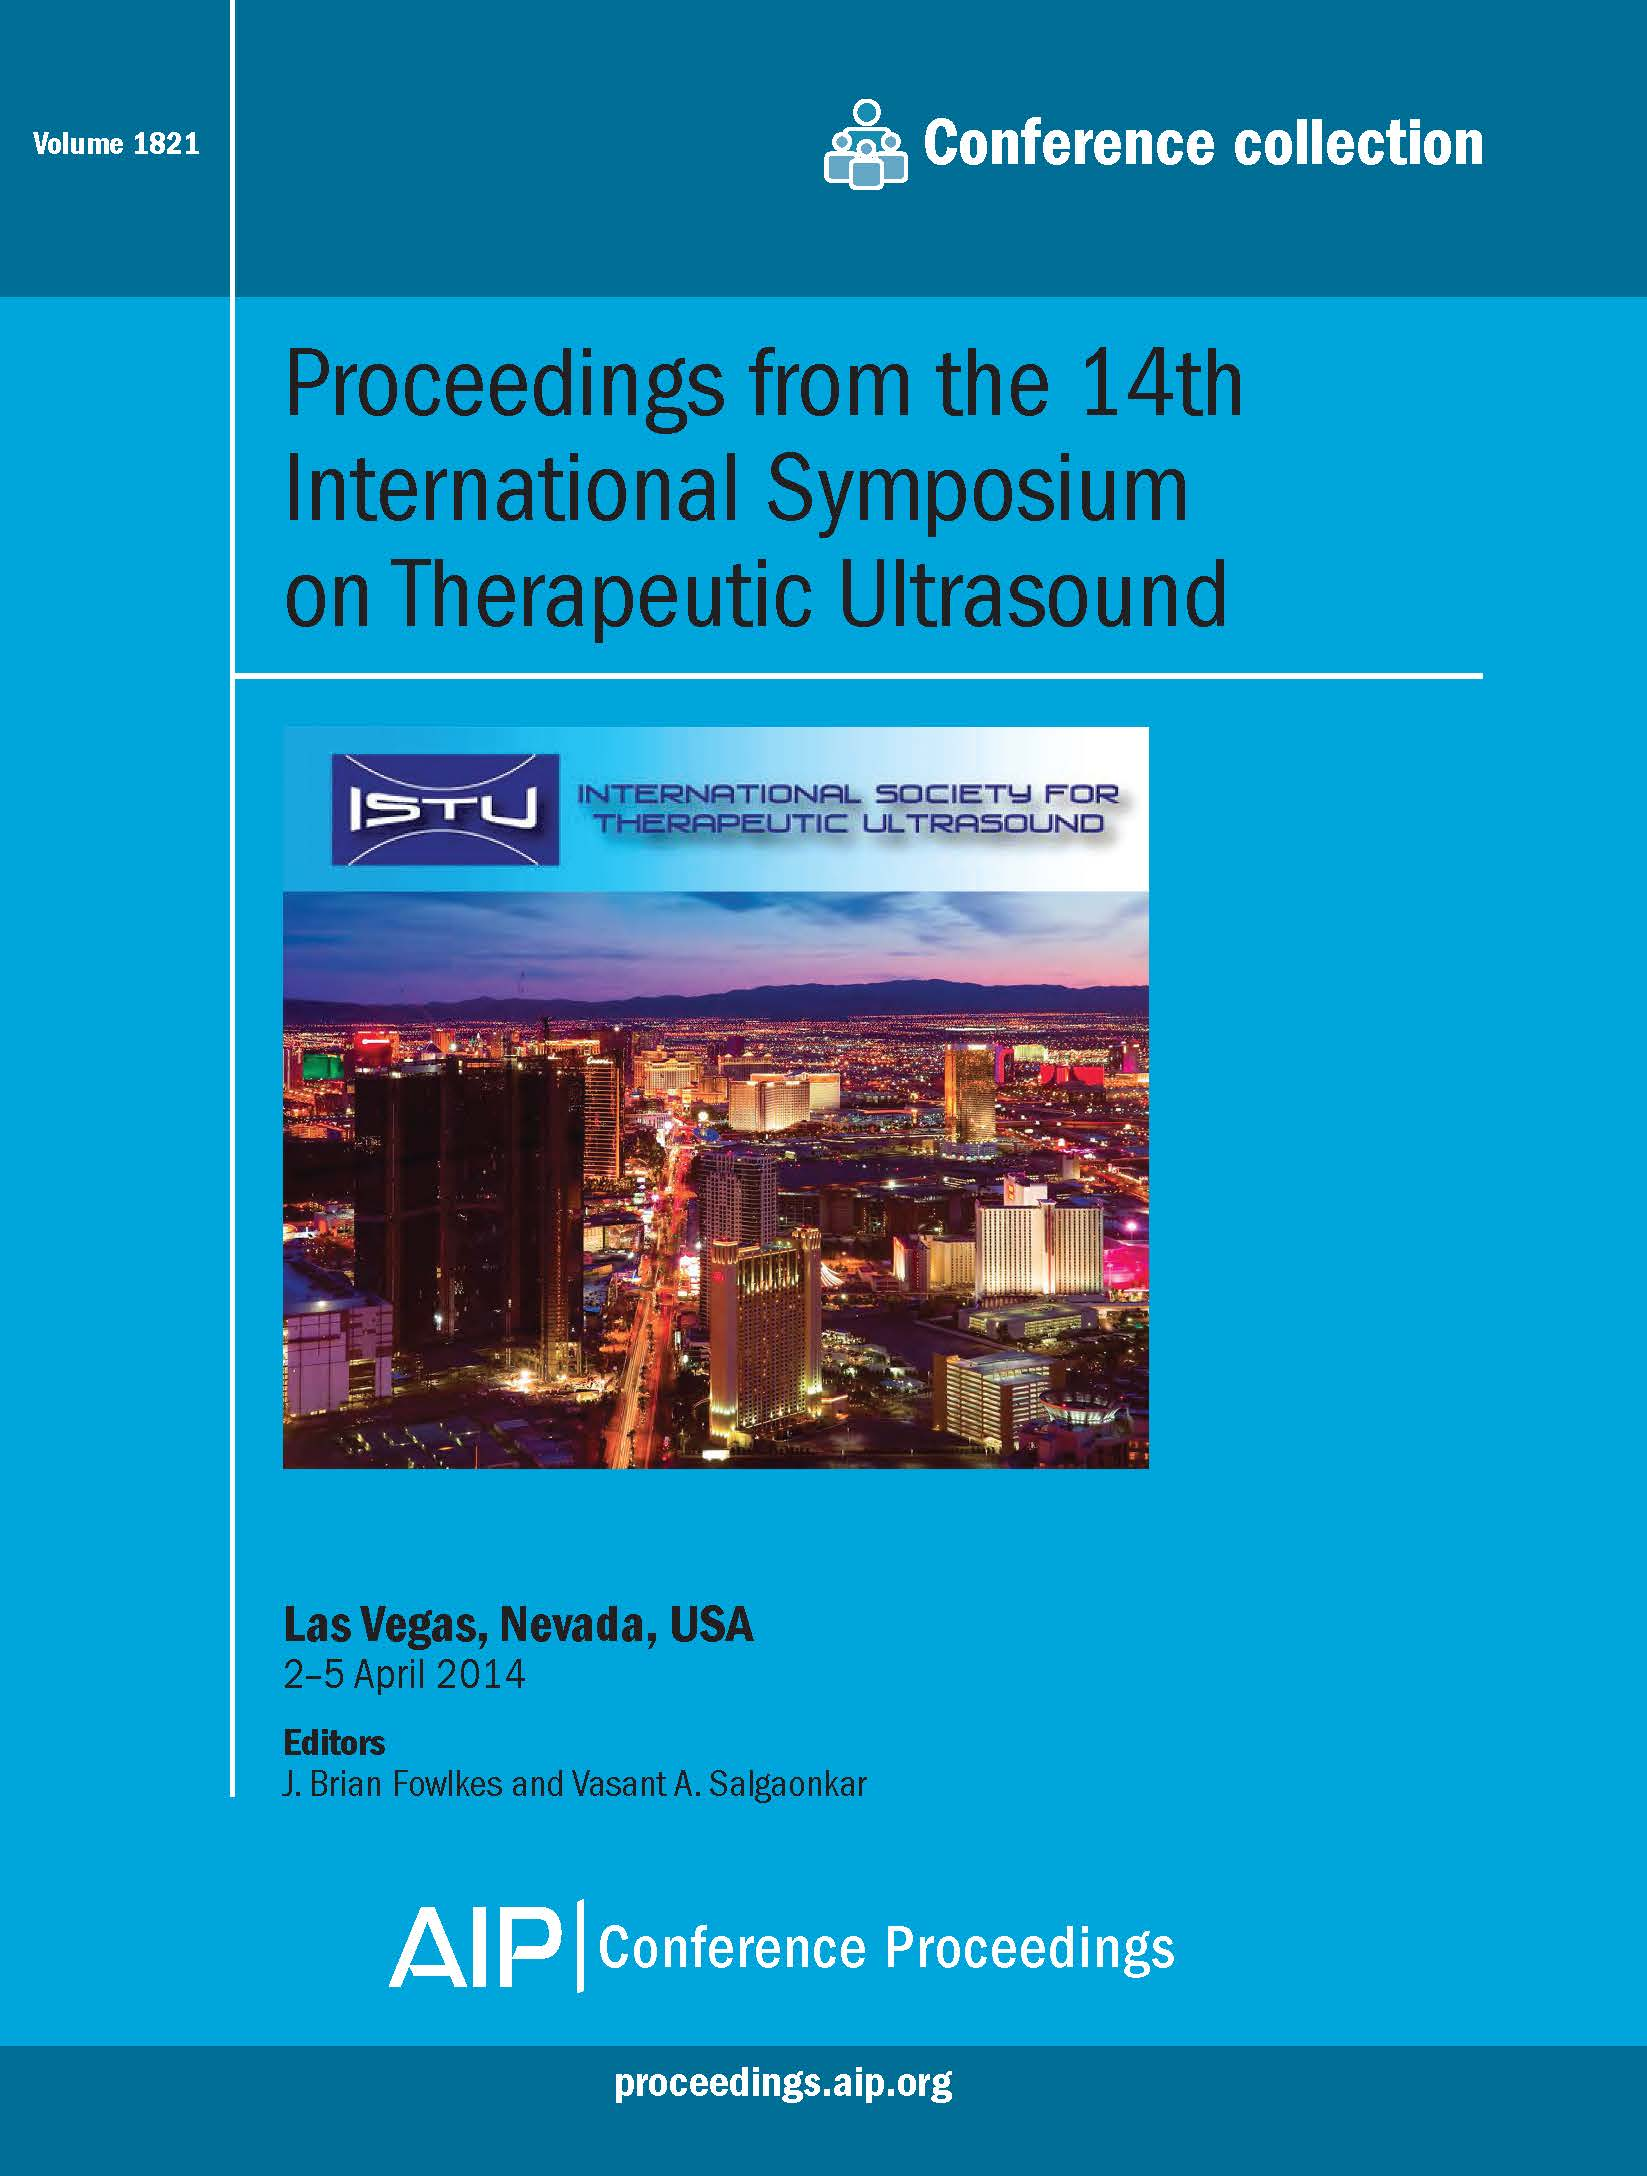 Volume 1821: Proceedings from the 14th International Symposium on